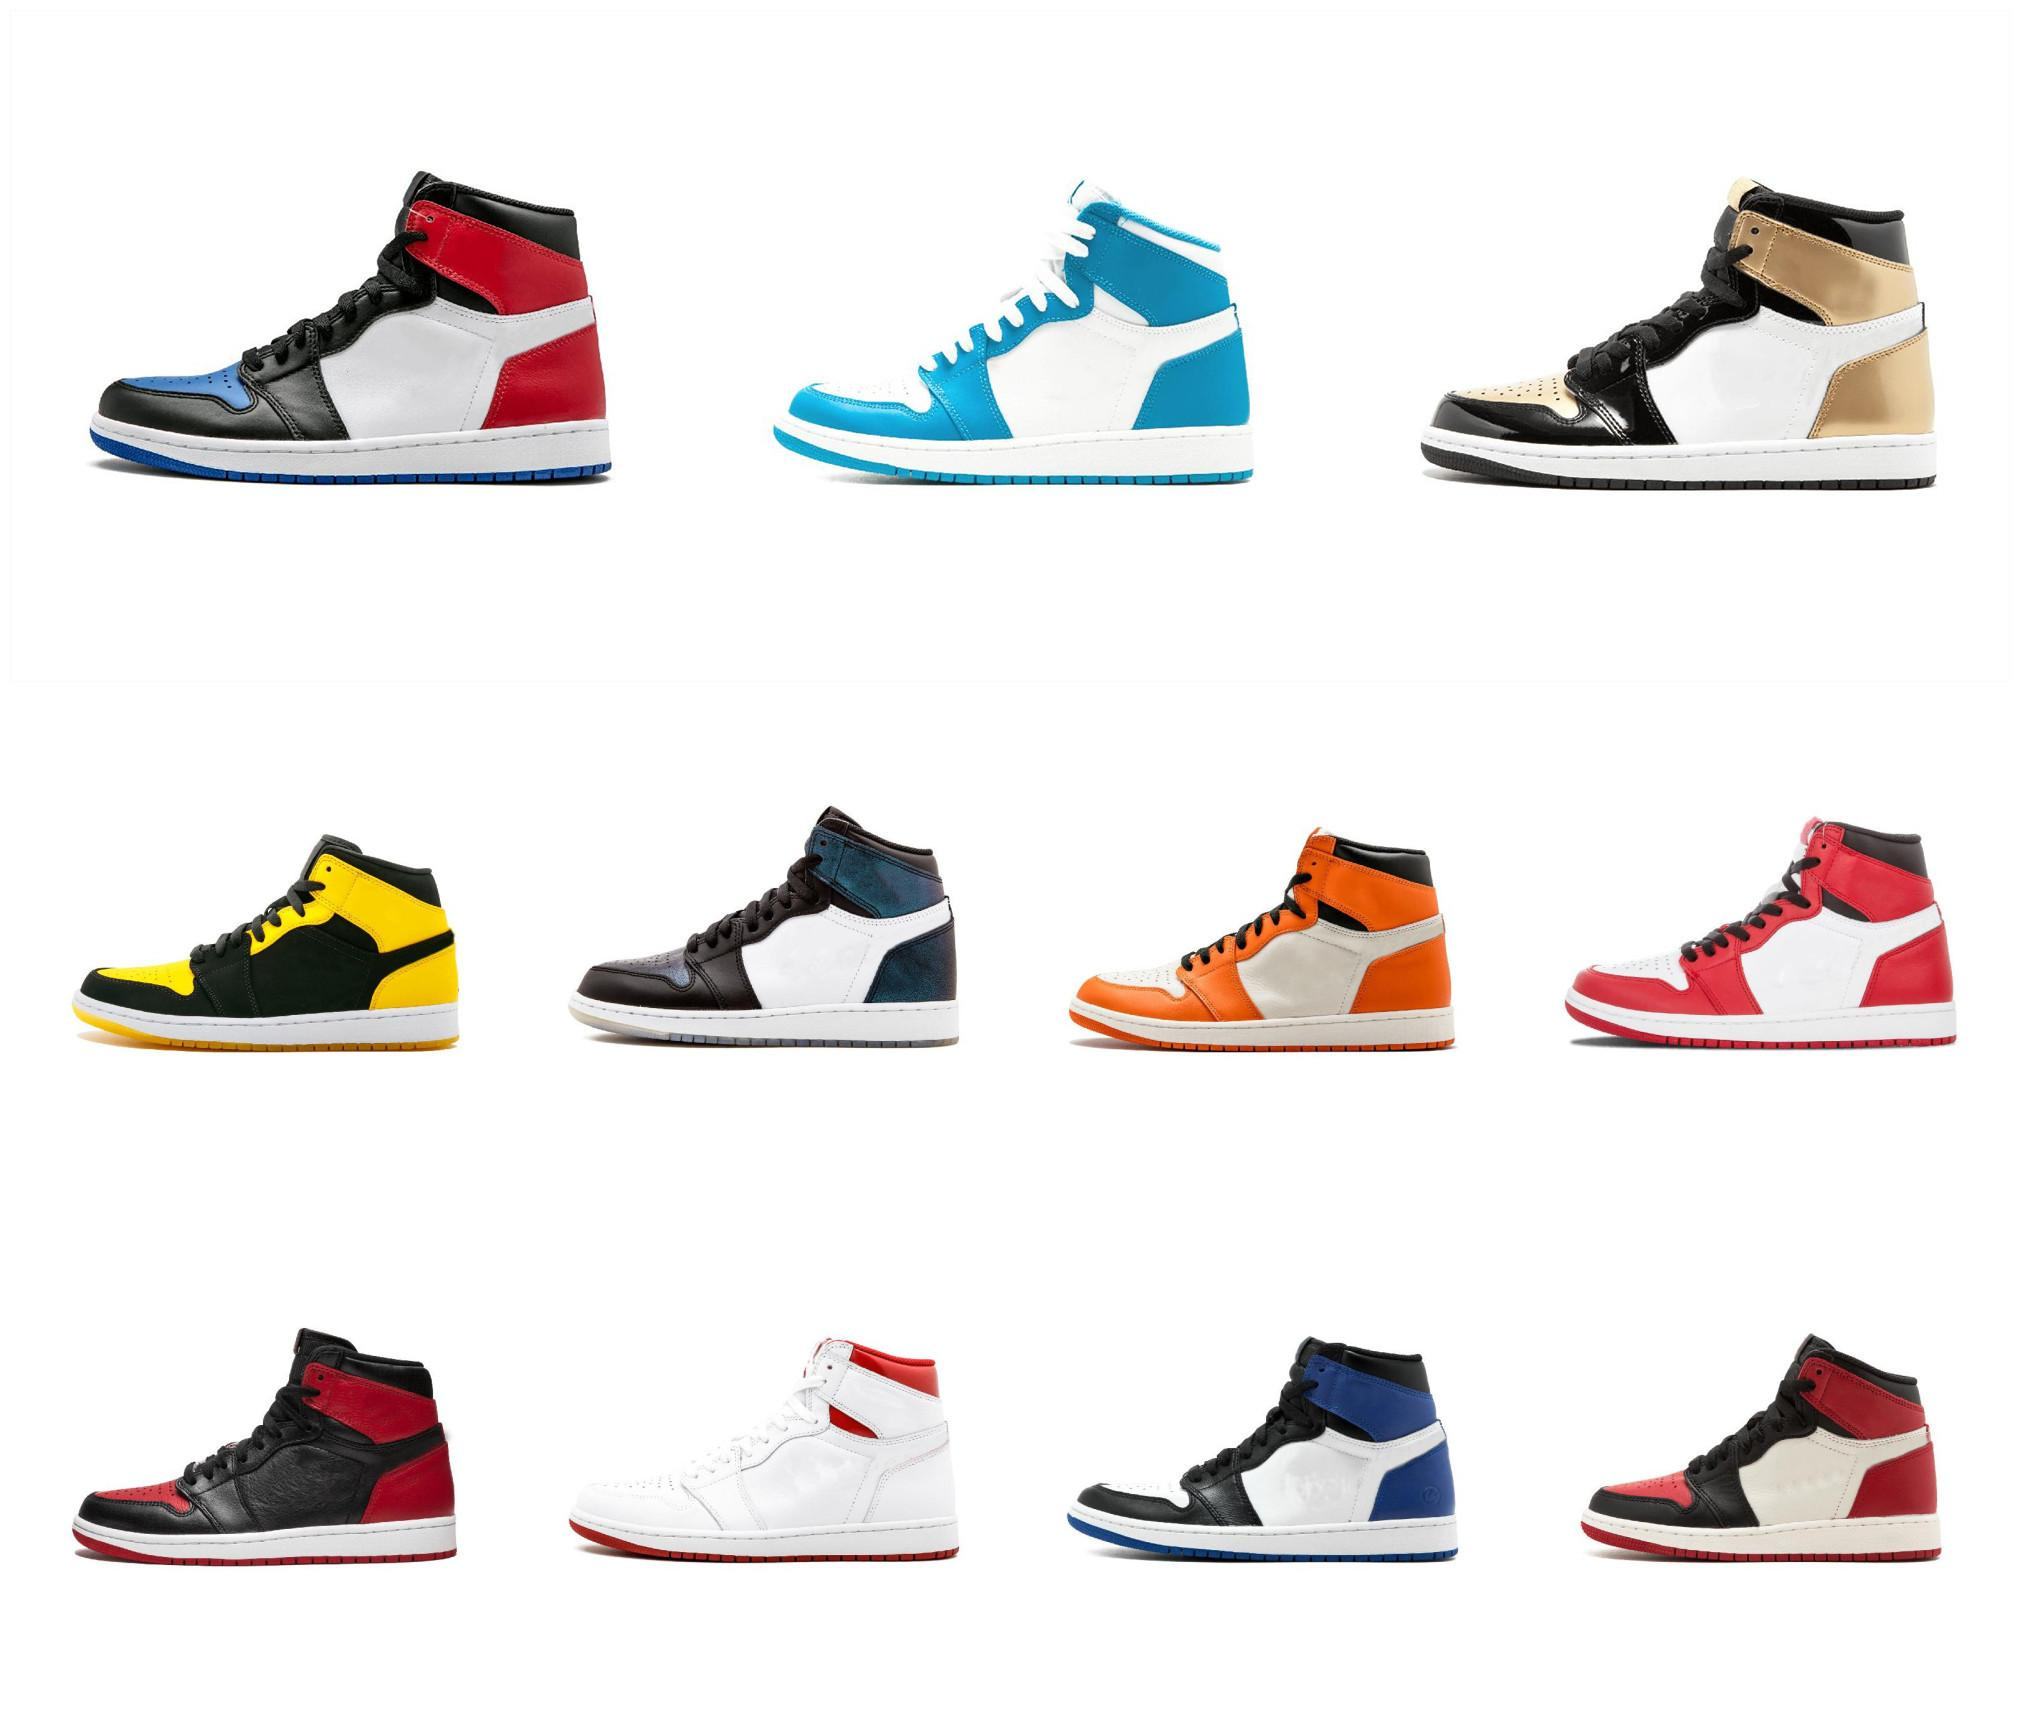 1s Mid OG 1 Top 3 Mens Basketball Shoes Wheat Gold Bred Toe Chicago Banned Royal Blue Fragment UNC Rebel Sneakers Sports trainers Shoes